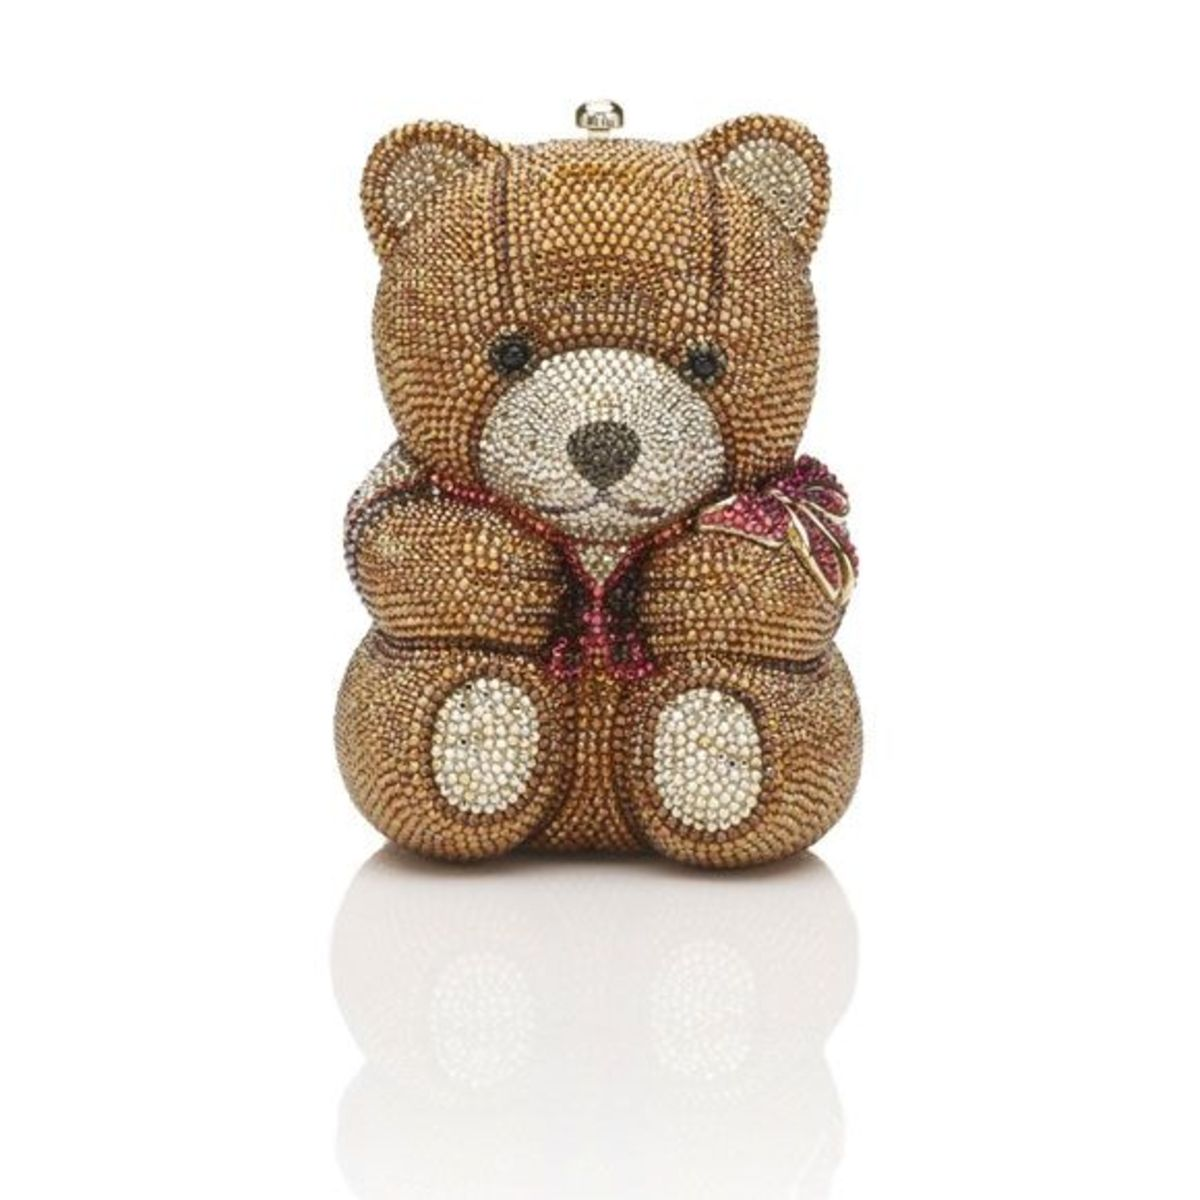 THEODOREPrice: $4,695Teddy Bear minaudière. Top snap closure, sculpted arm, leg and face detailing.Also available- Panda